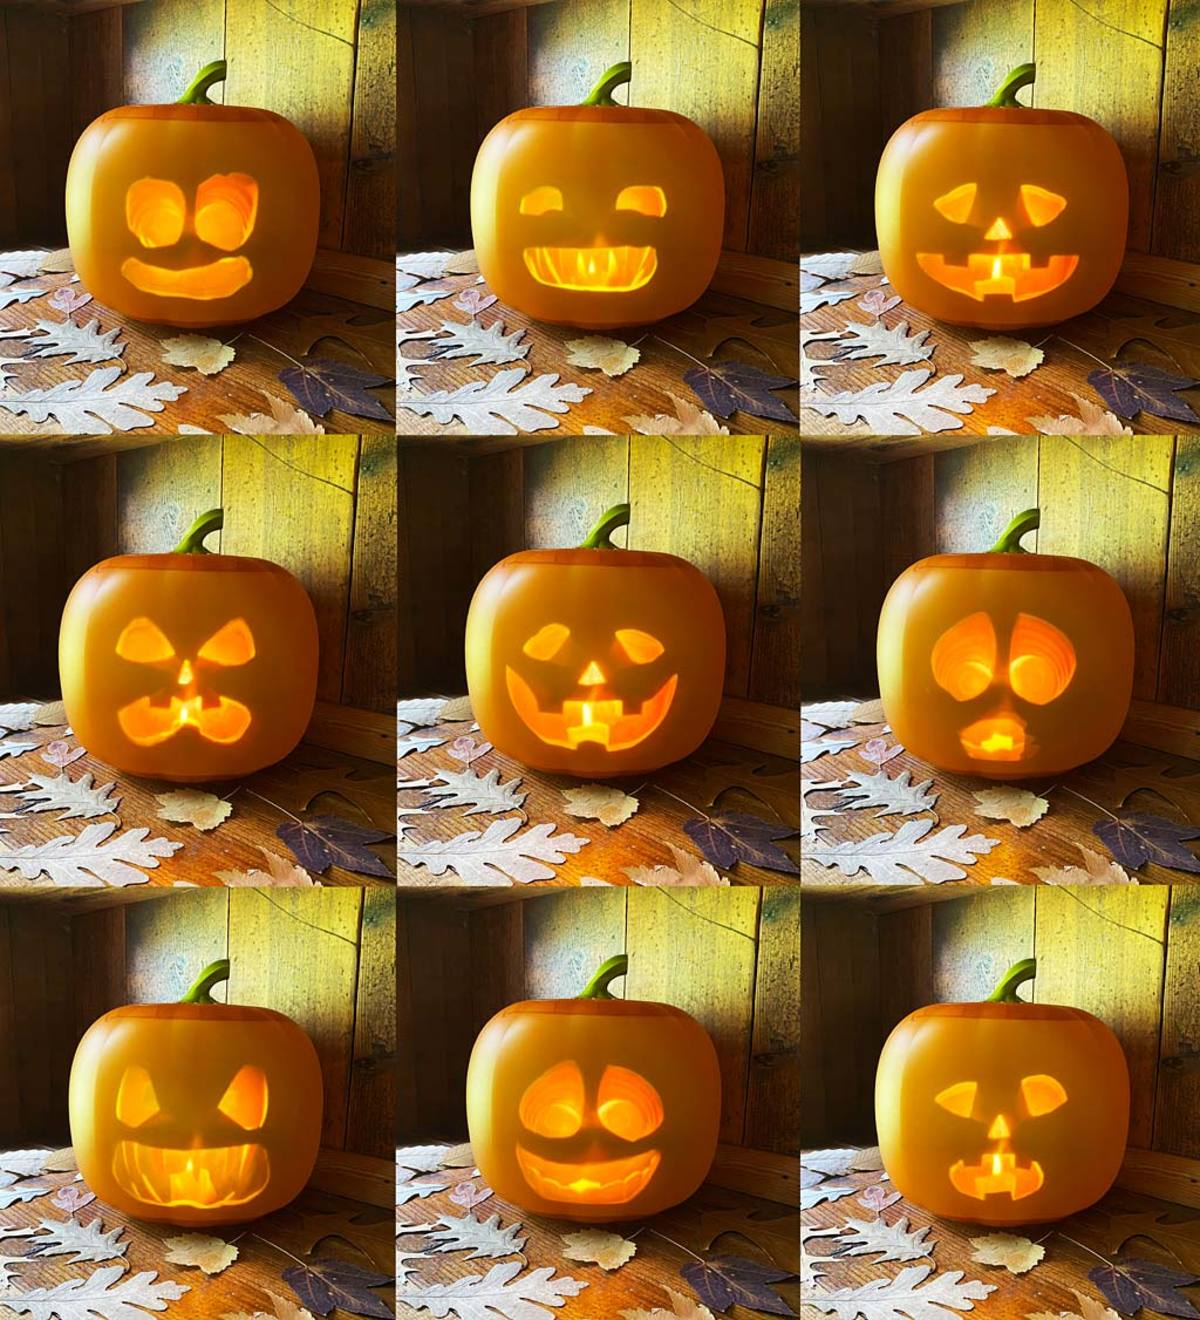 Jabberin' Jack Animated Talking Pumpkin